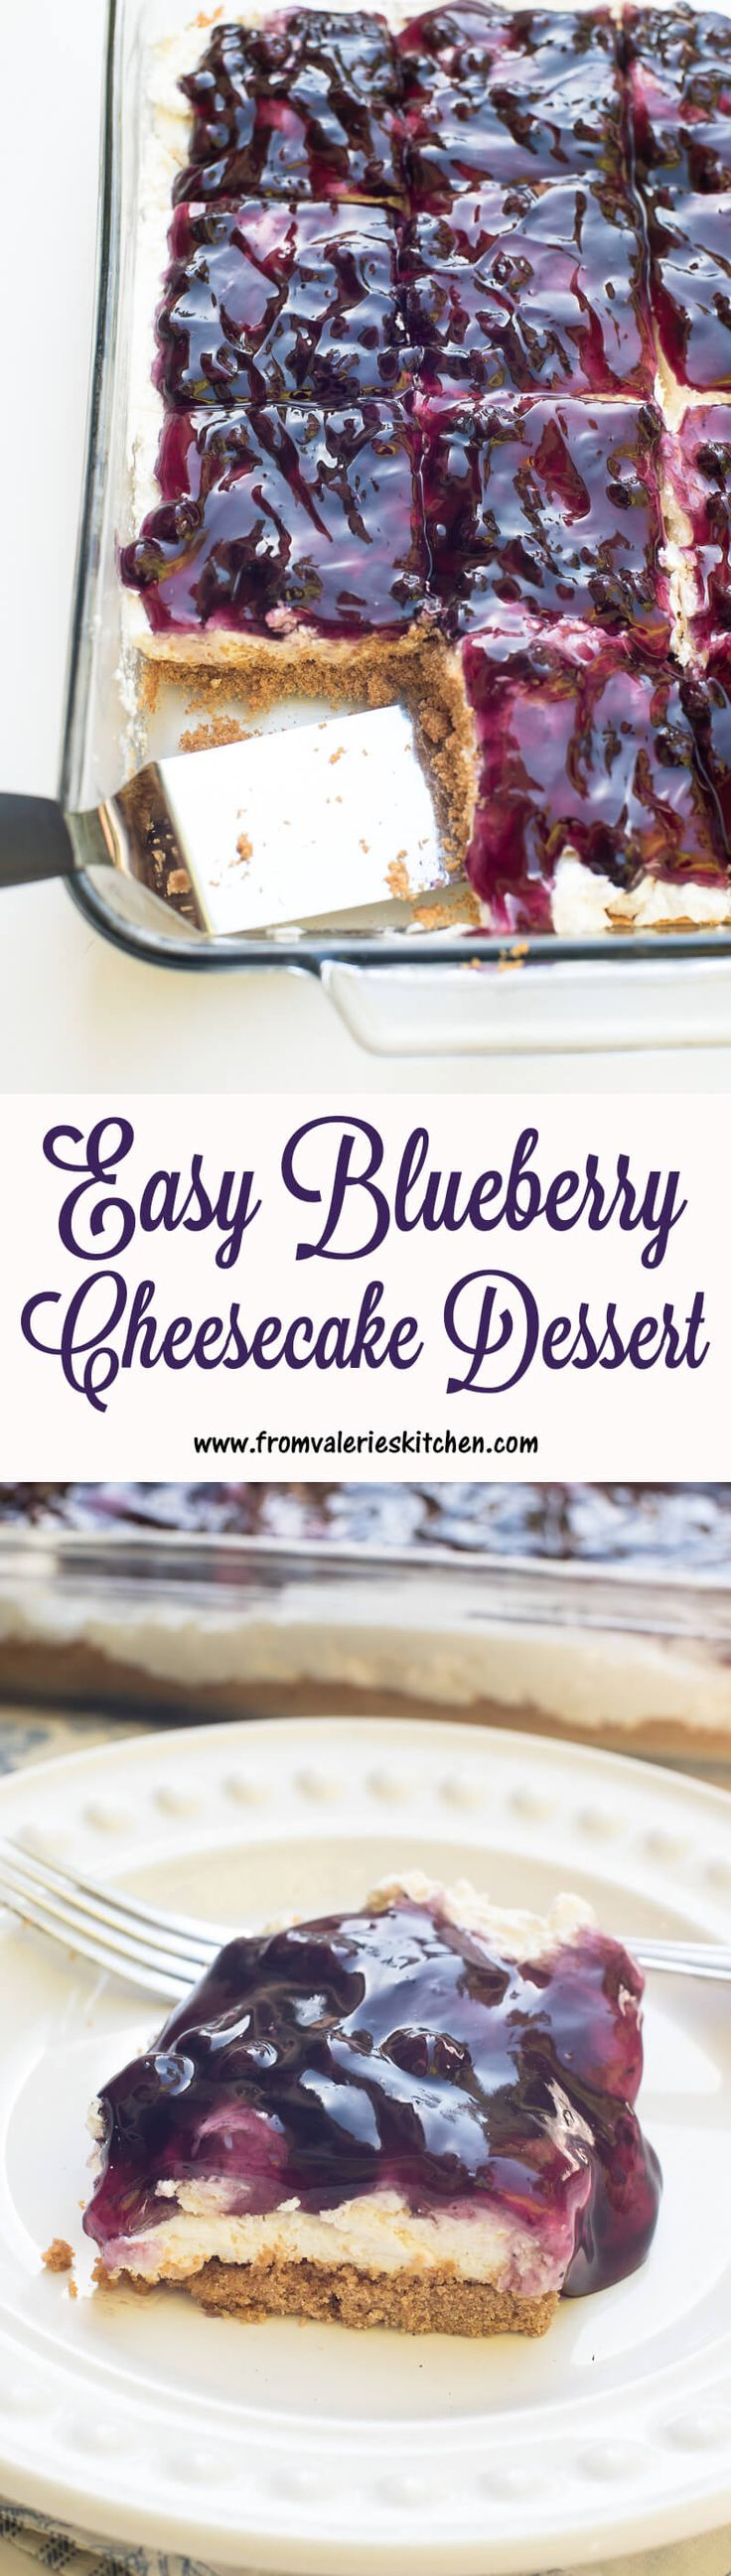 Easy Blueberry Cheesecake dessert. This delicious dessert is a snap to pull together and is always a hit!